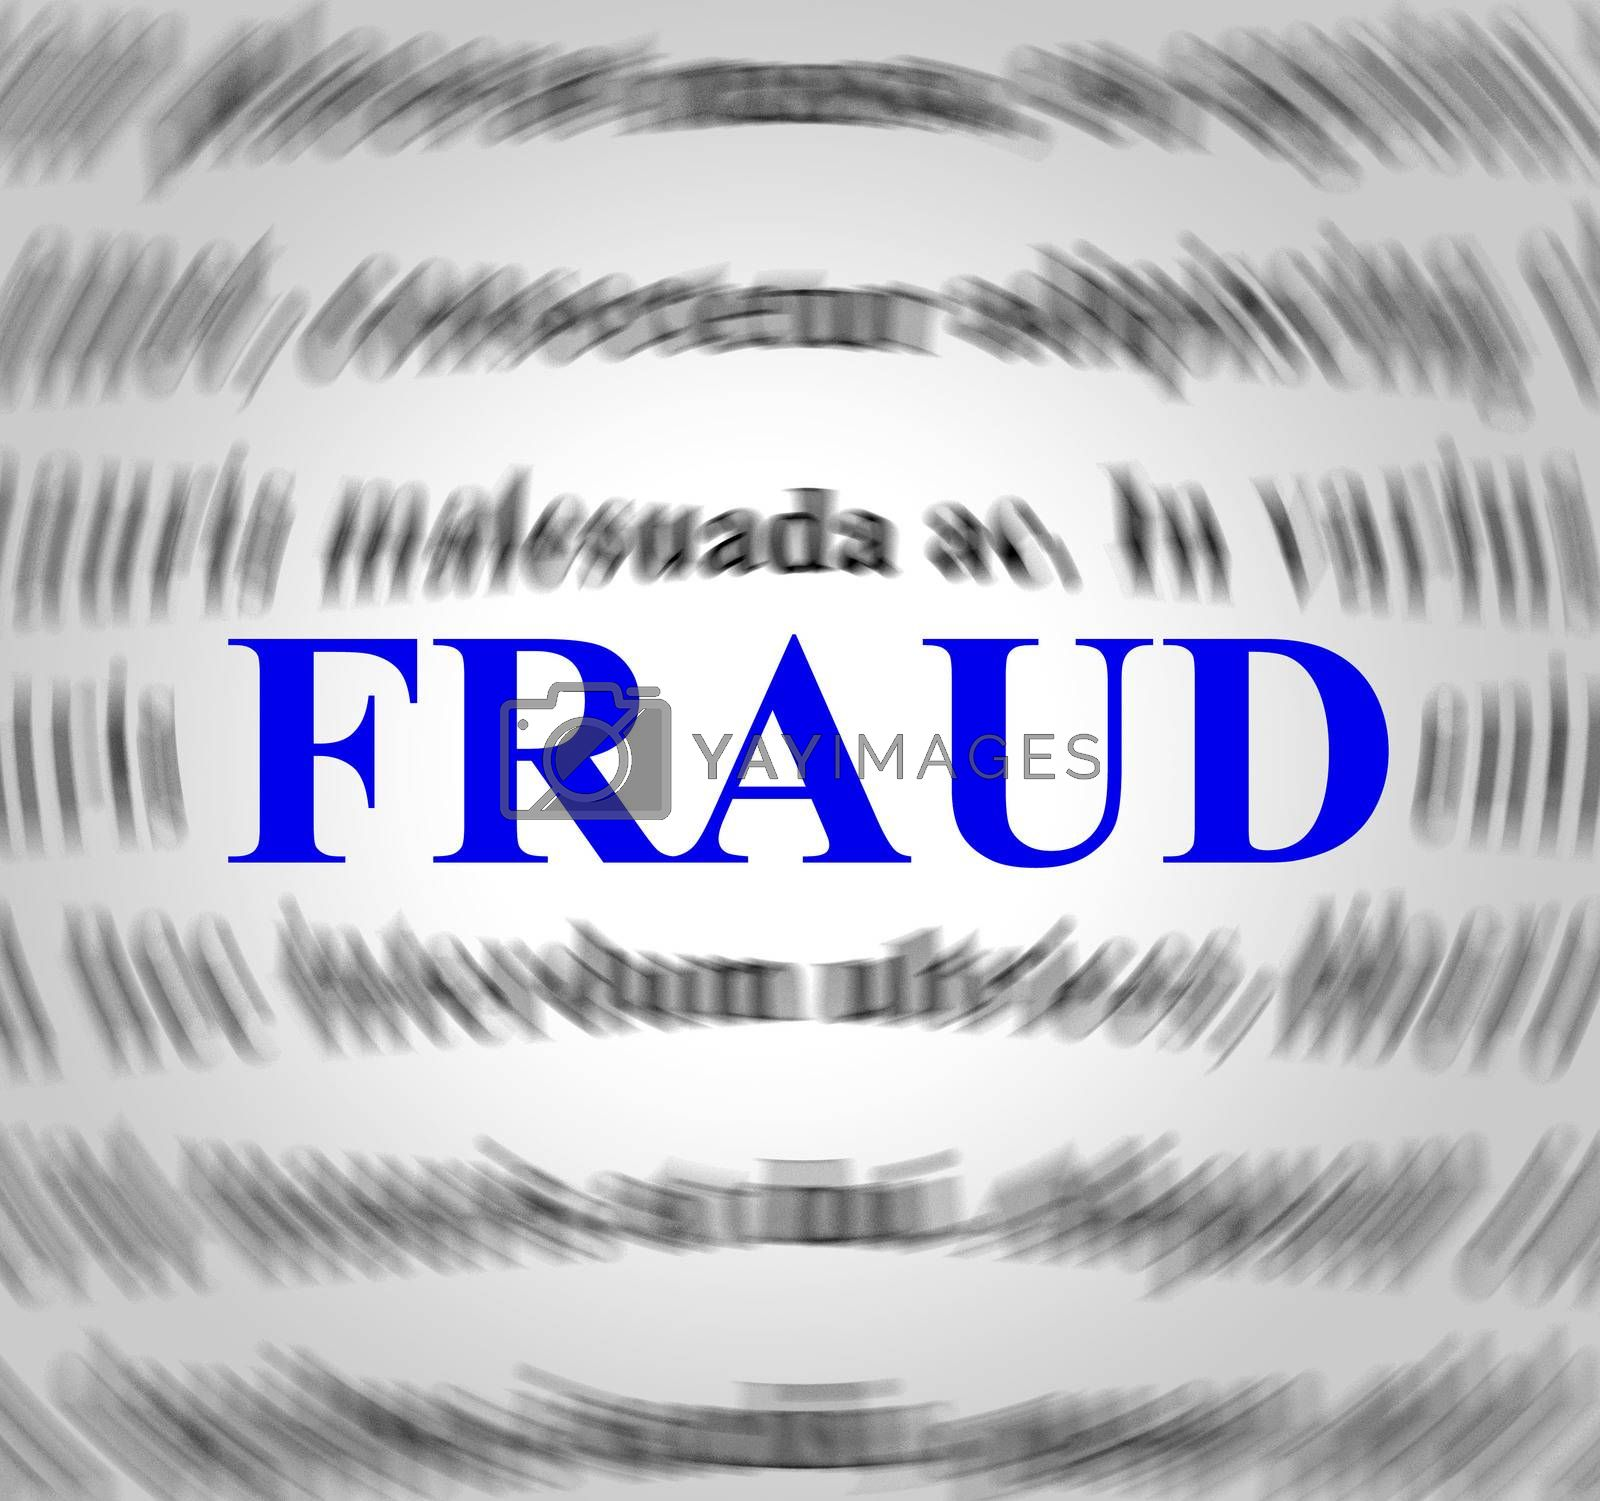 Fraud Definition Indicates Rip Off And Con by stuartmiles